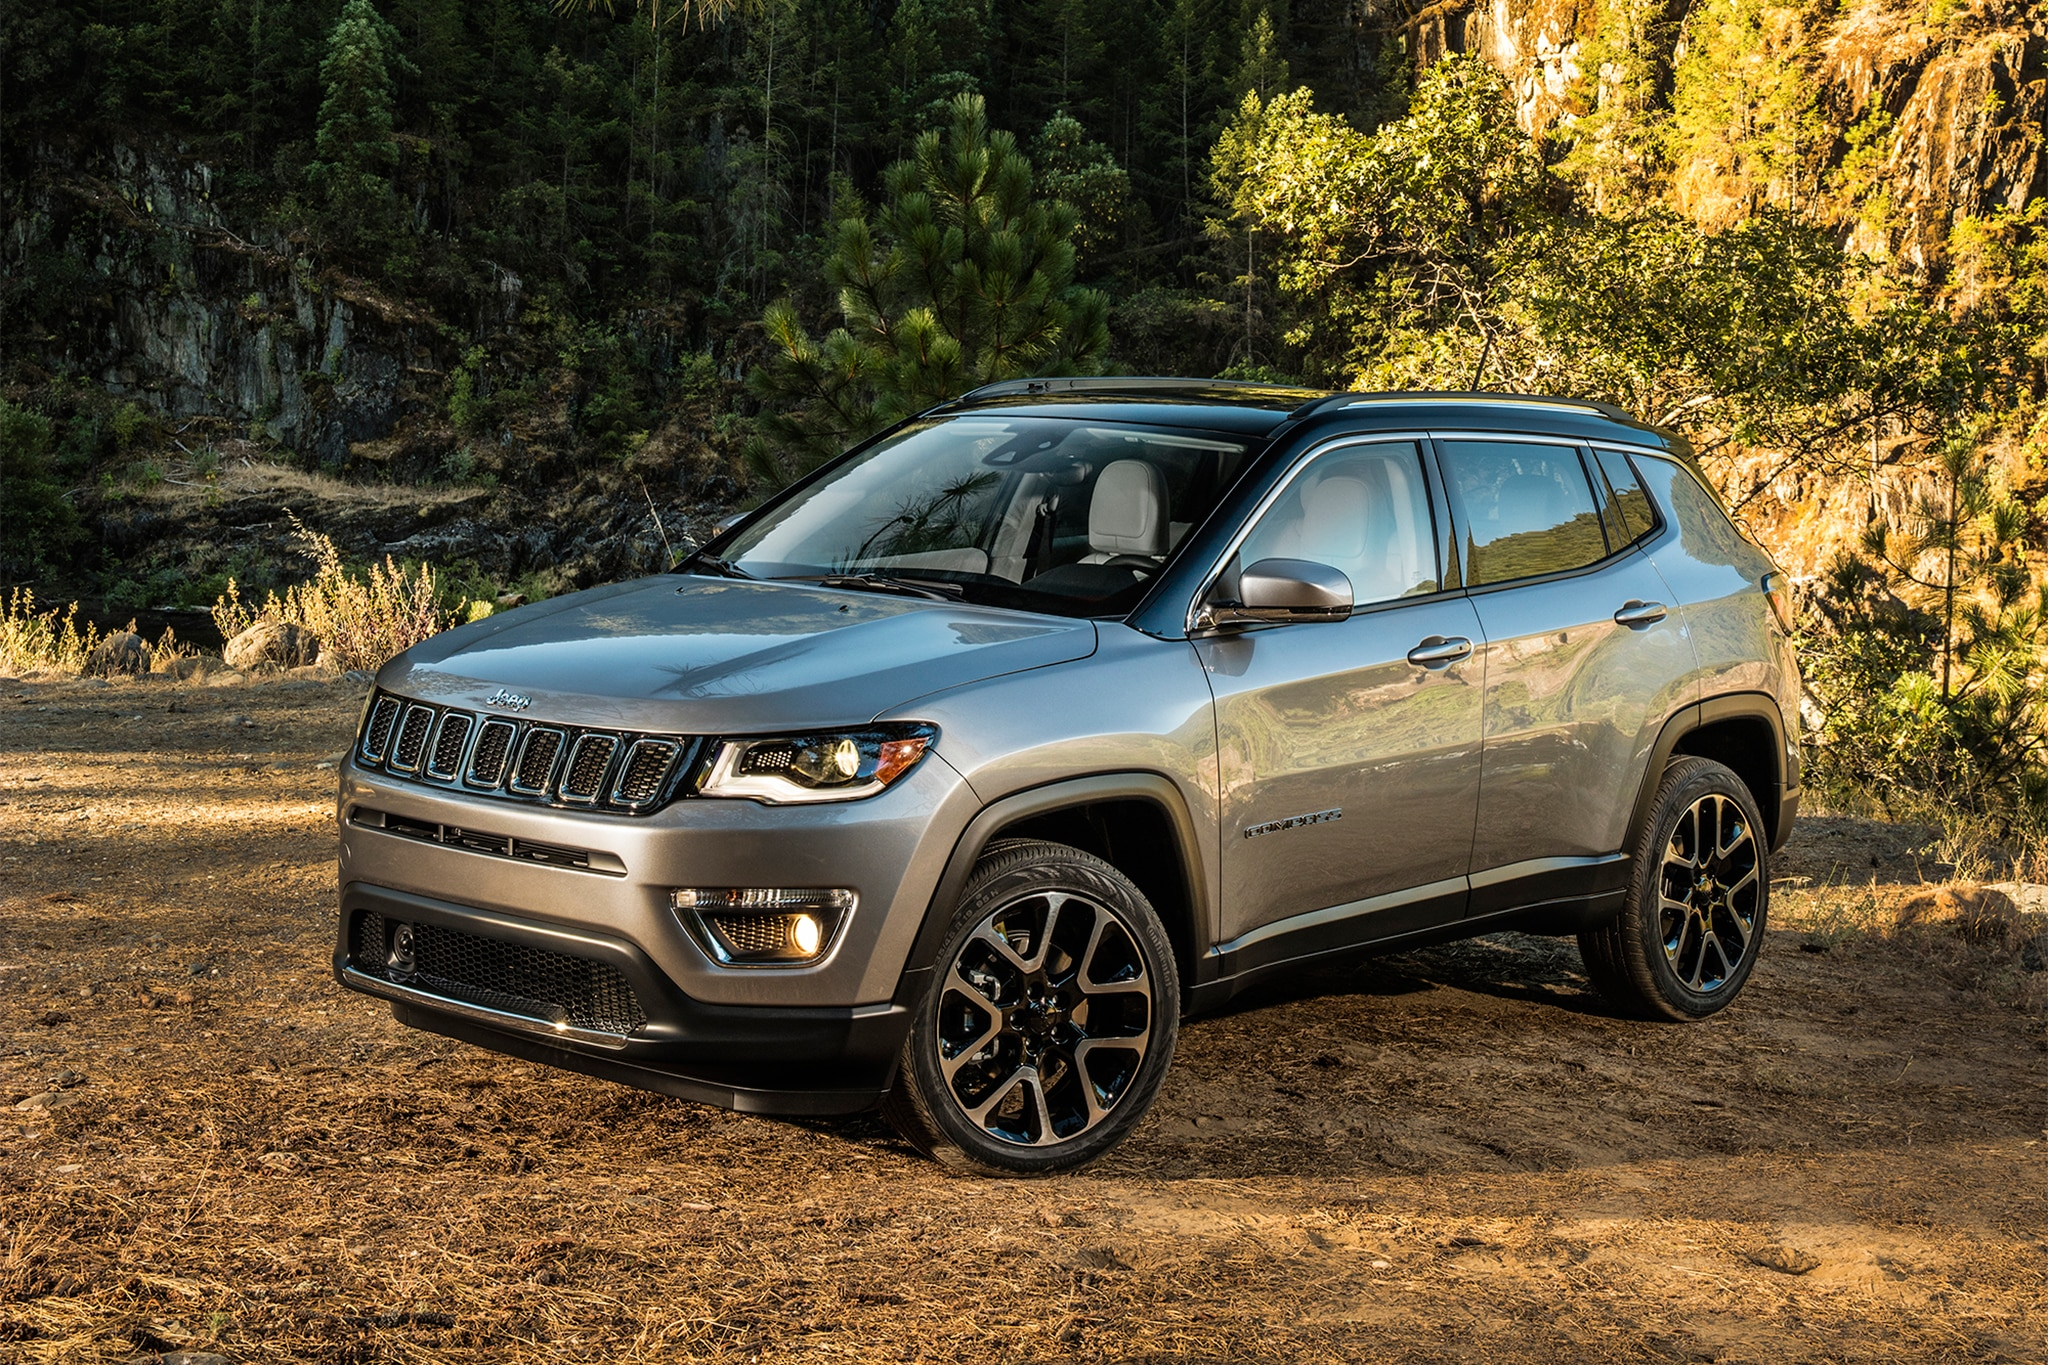 Jeep Cherokee Altitude >> 2017 Jeep Compass First Look | Automobile Magazine